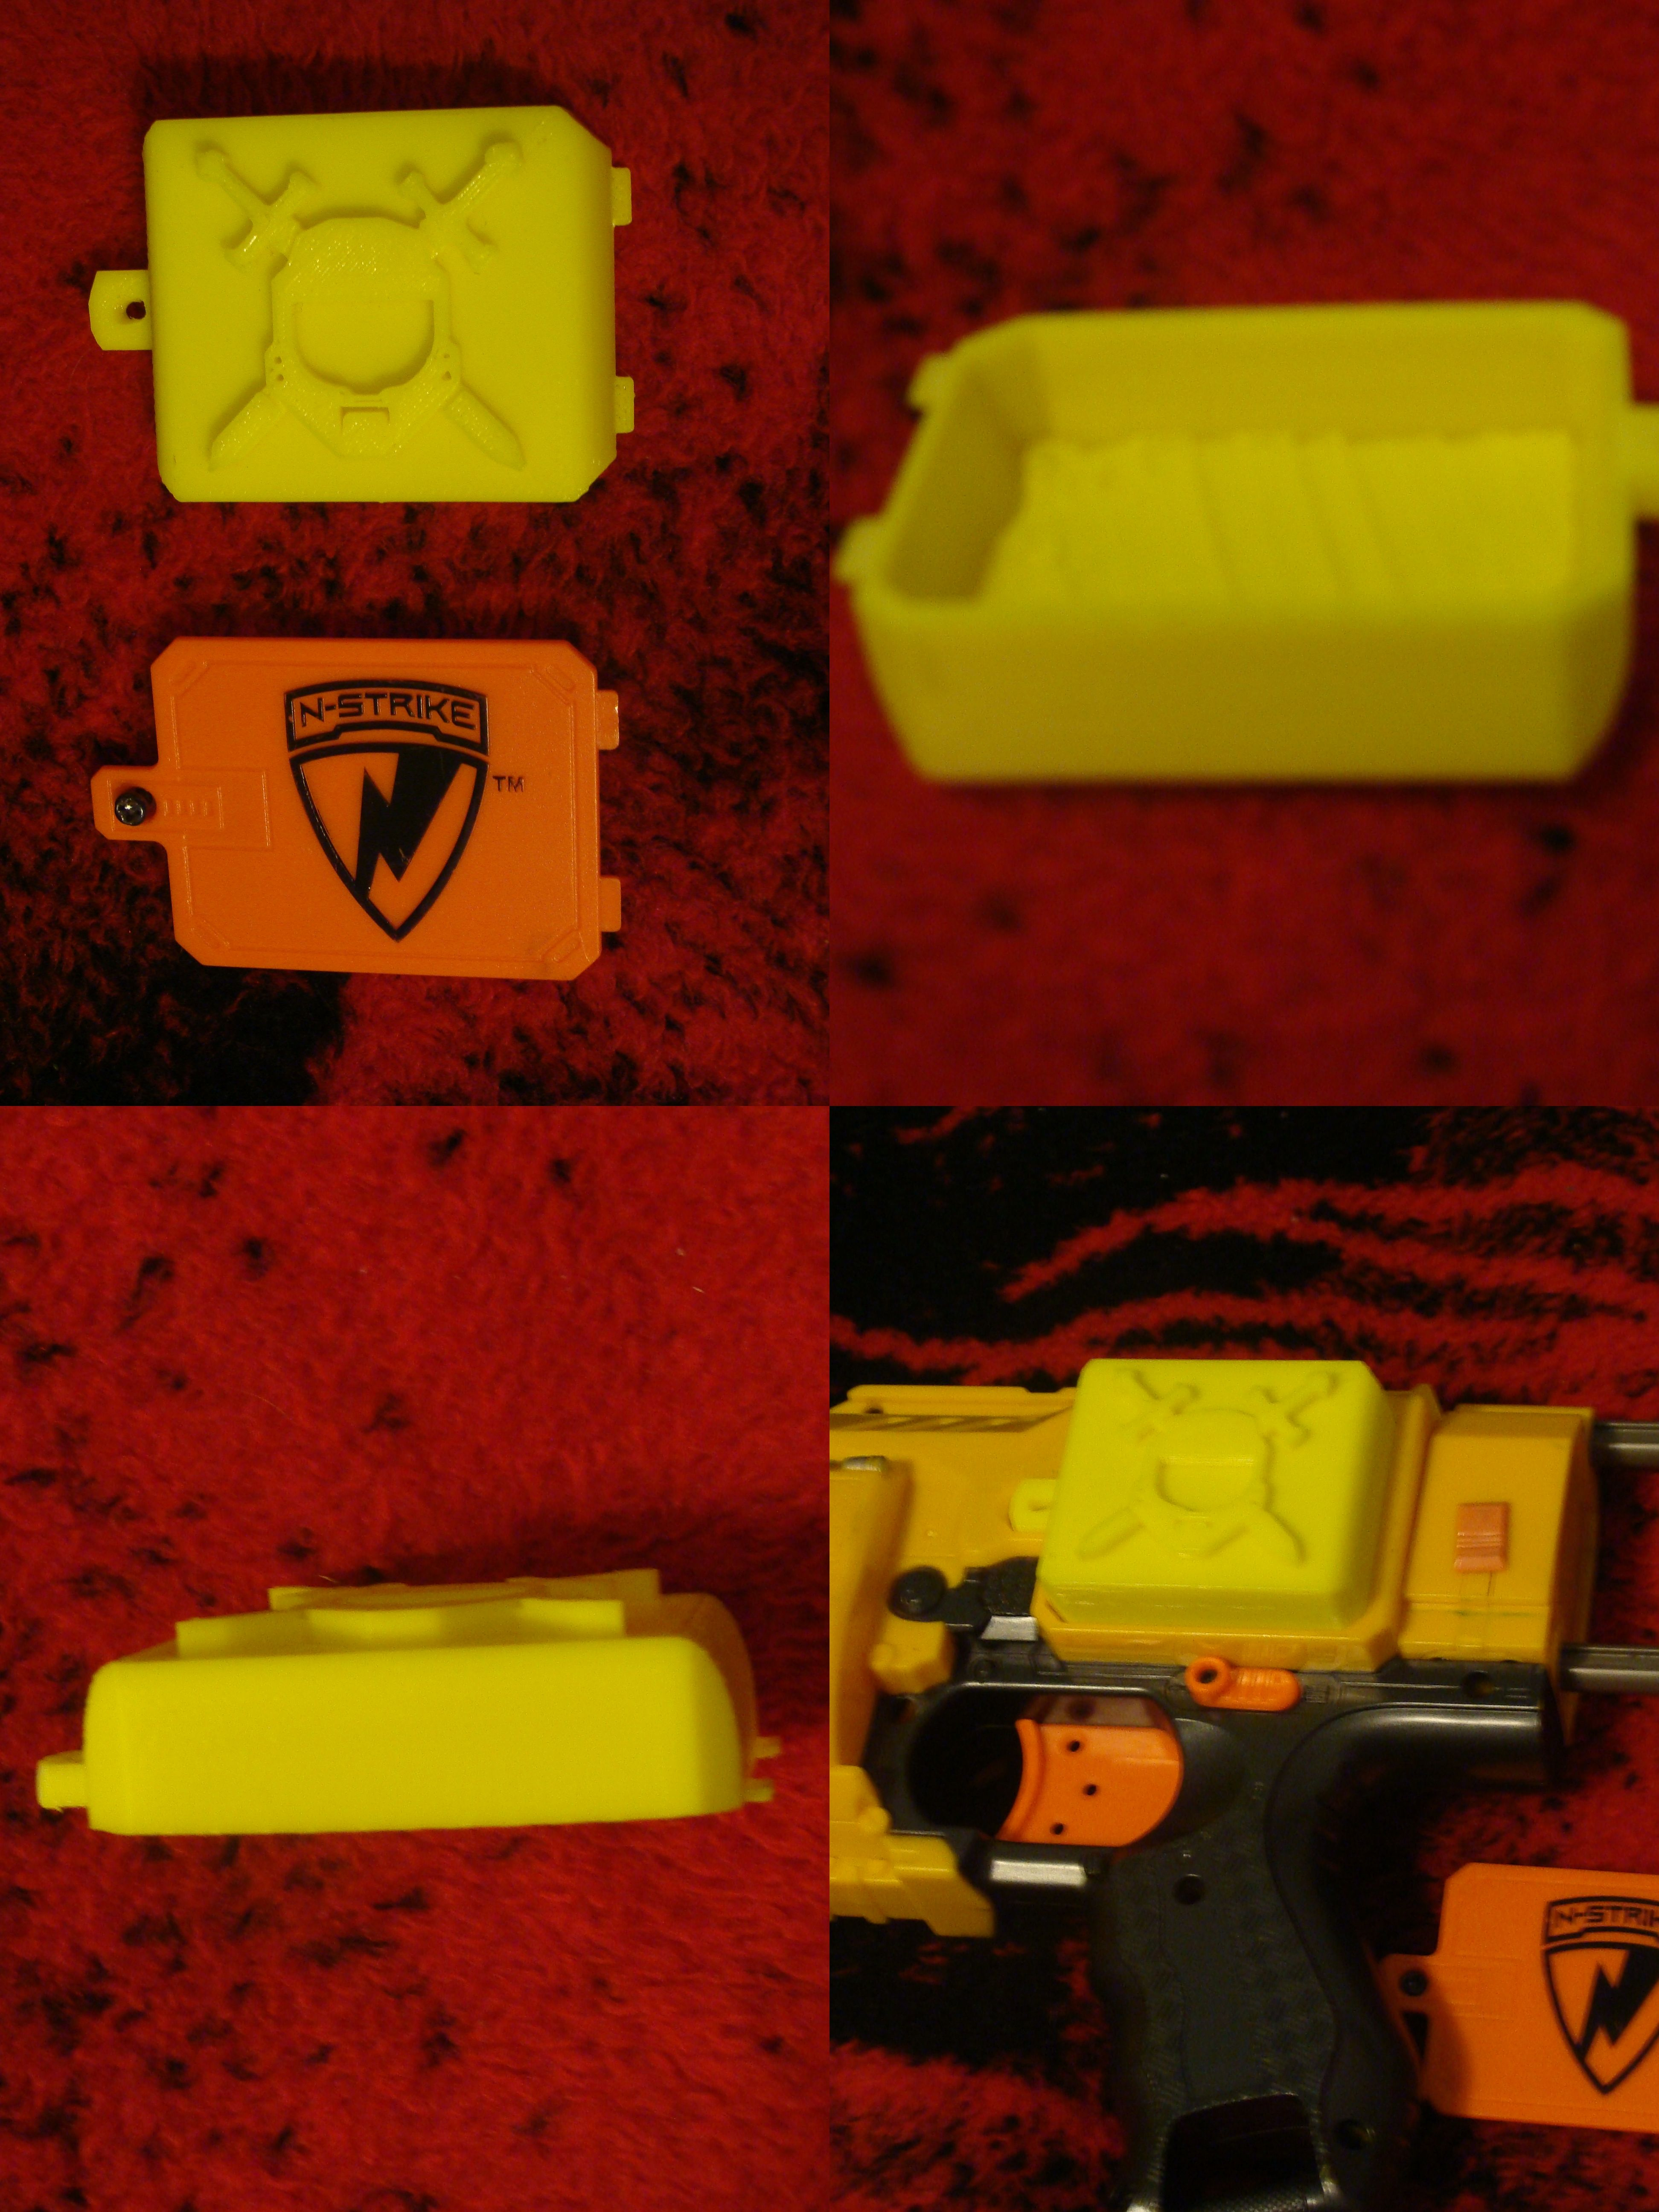 Color printing el paso tx - Custom Printed Battery Cover For Nerf Barricade Rv 10 New Spartan Gun By Dusty Plastics In El Paso Tx